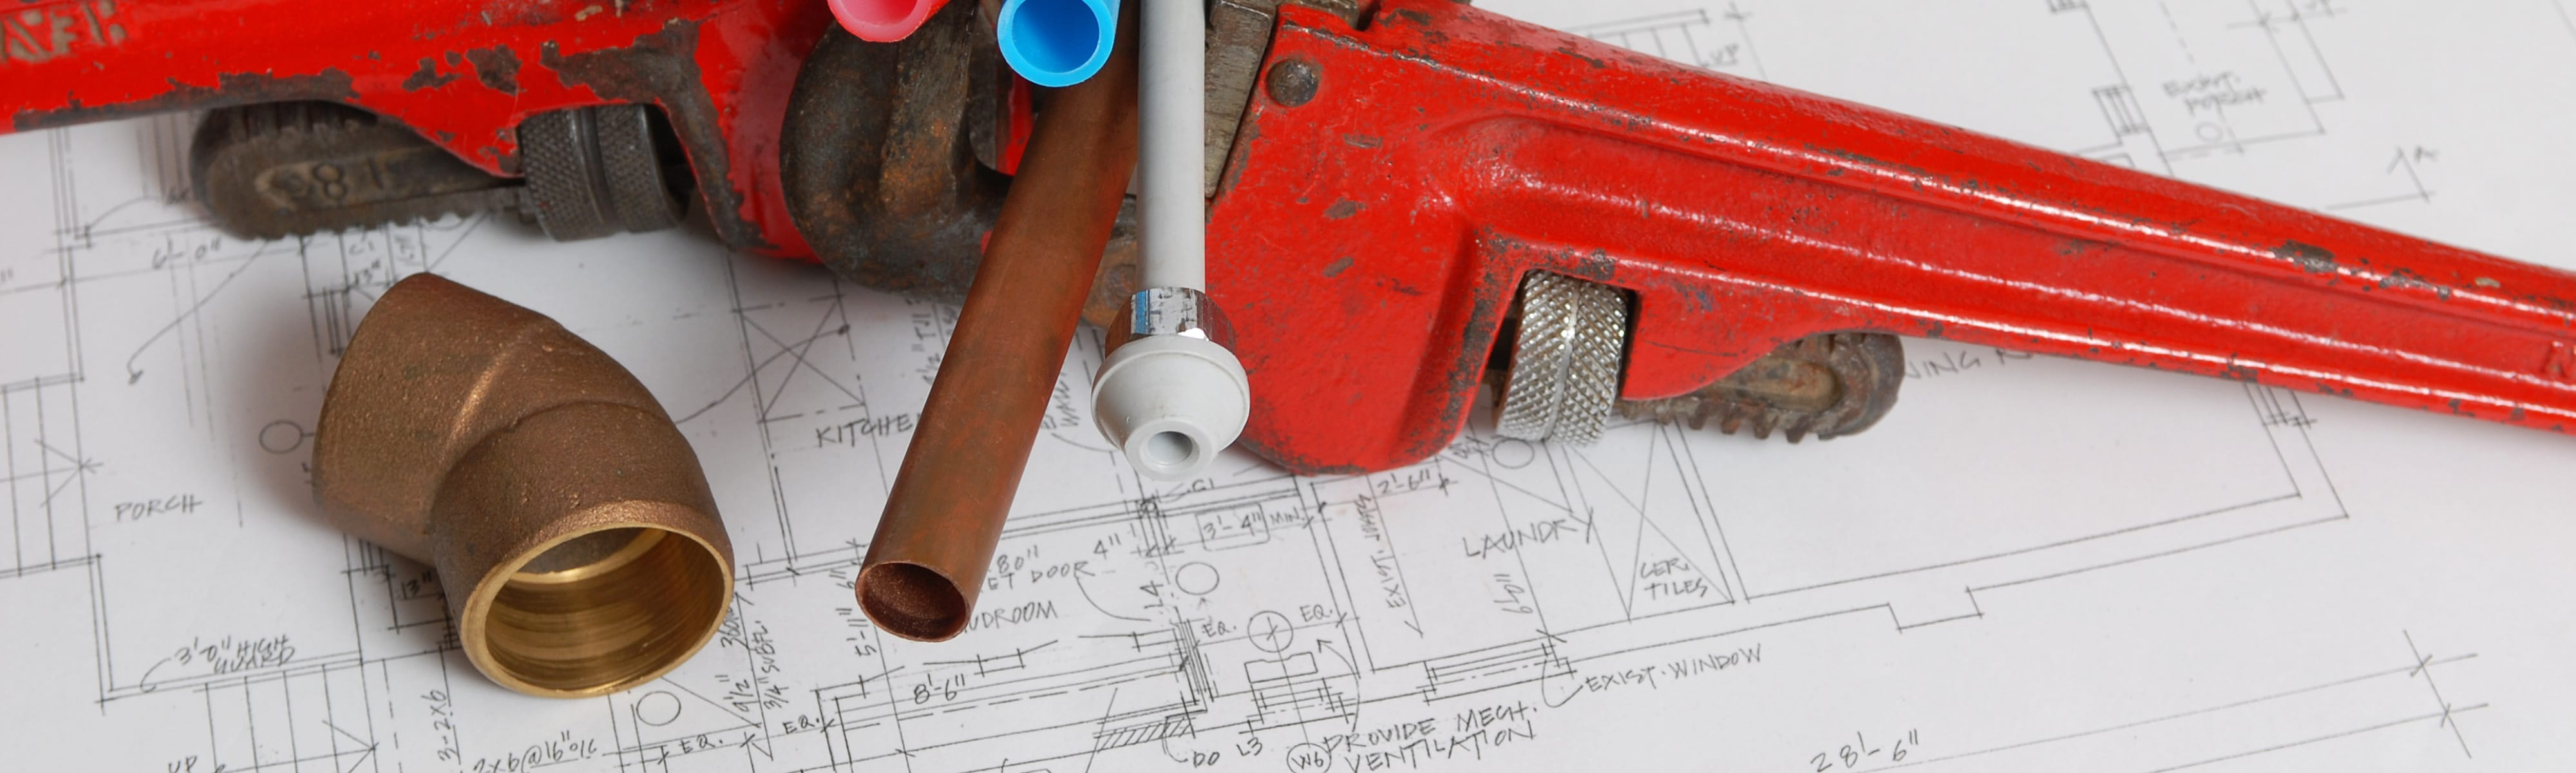 Various tools on blueprints.